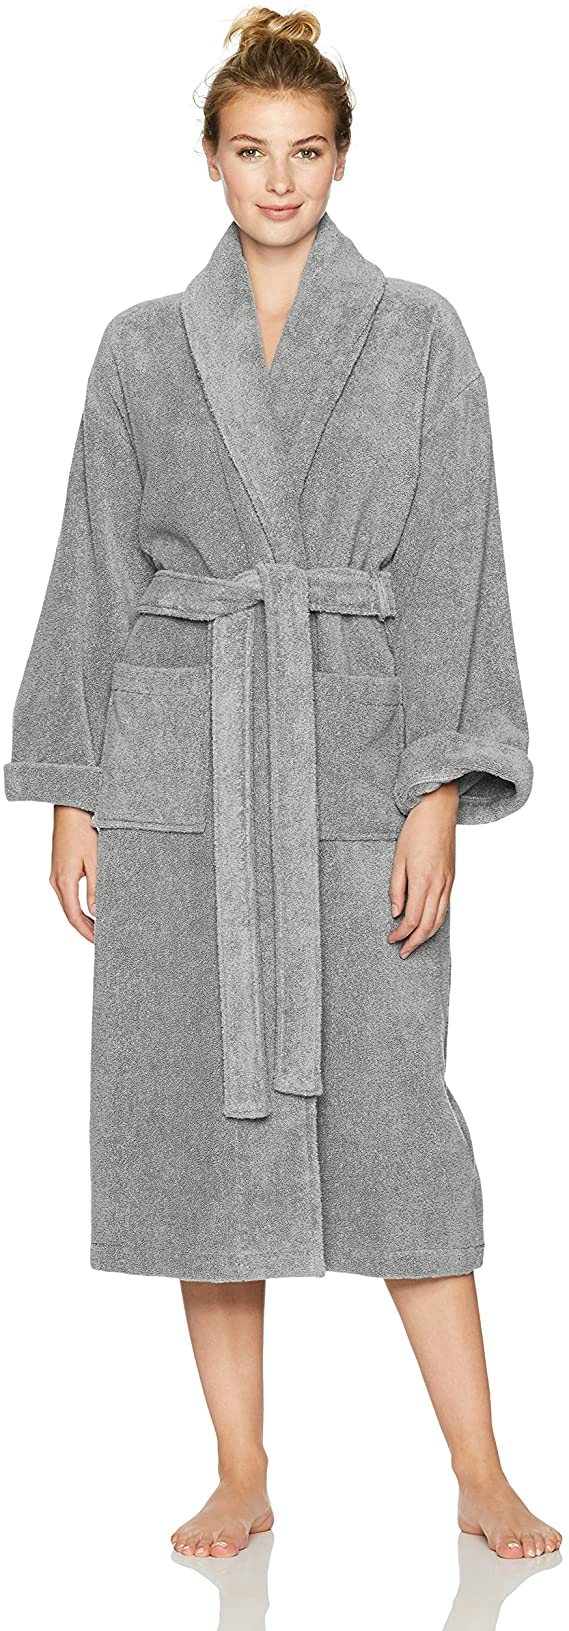 Pinzon Terry Bathrobe 100% Cotton